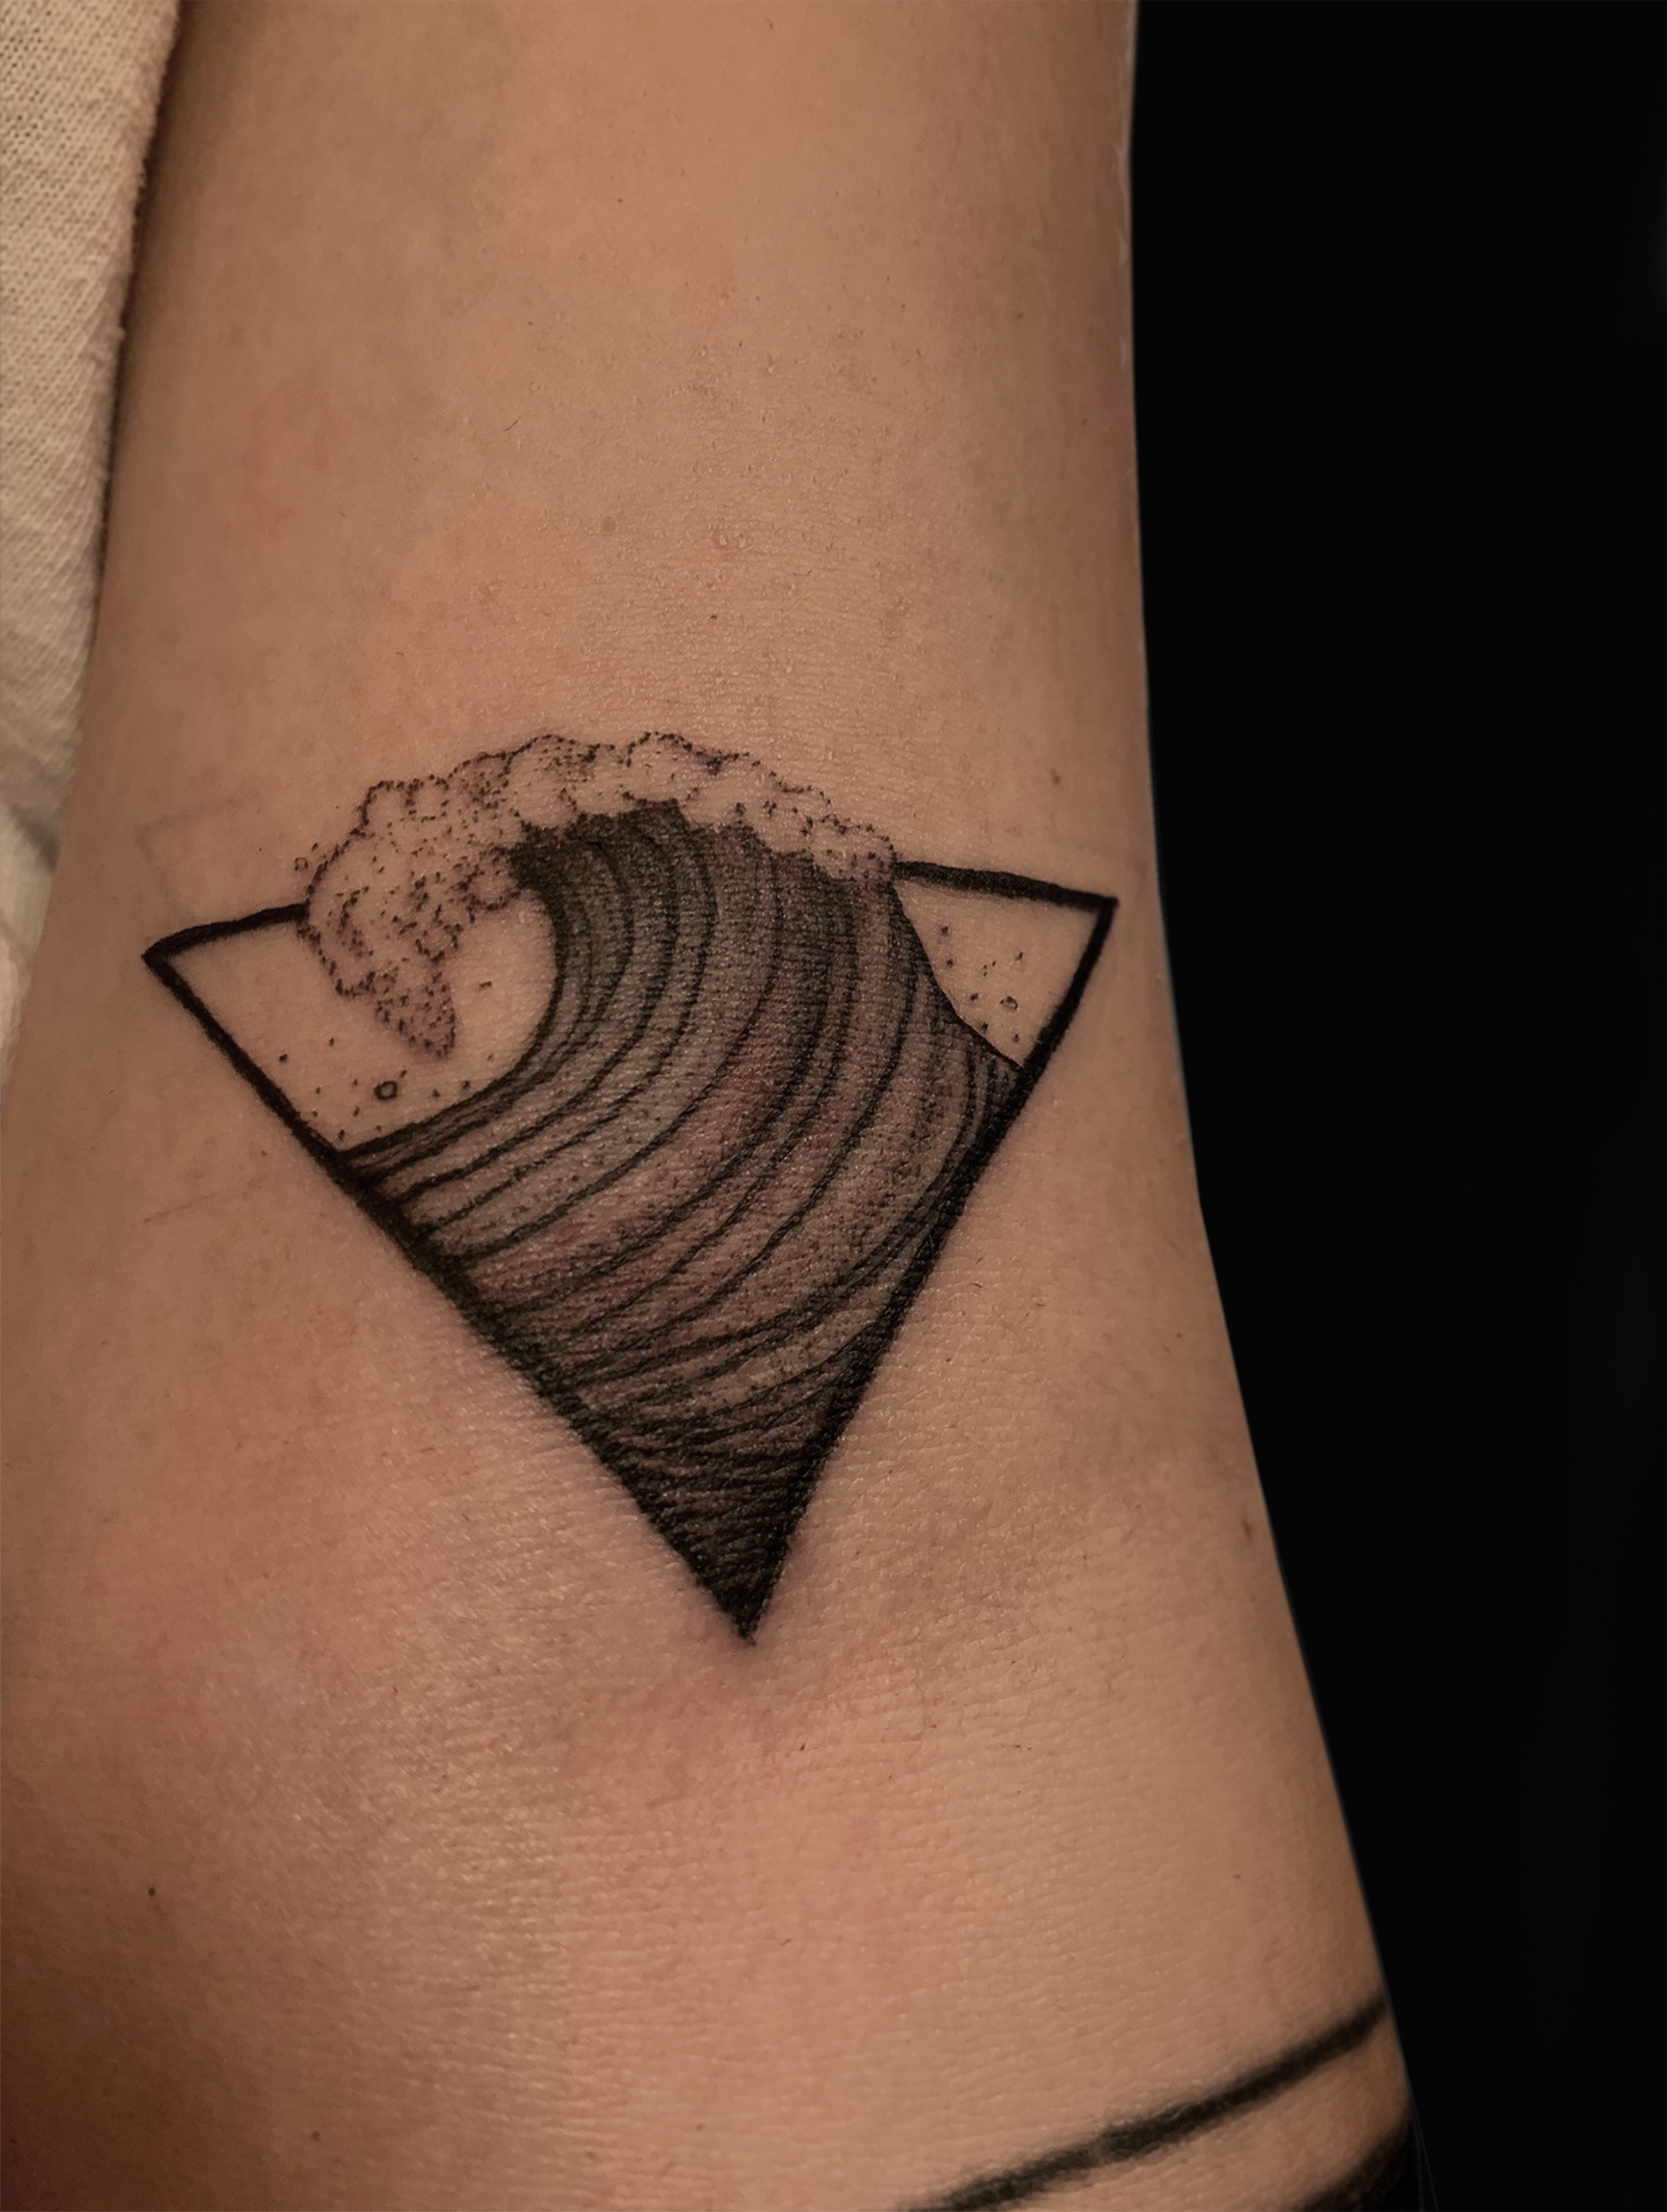 wavetattoo.jpg